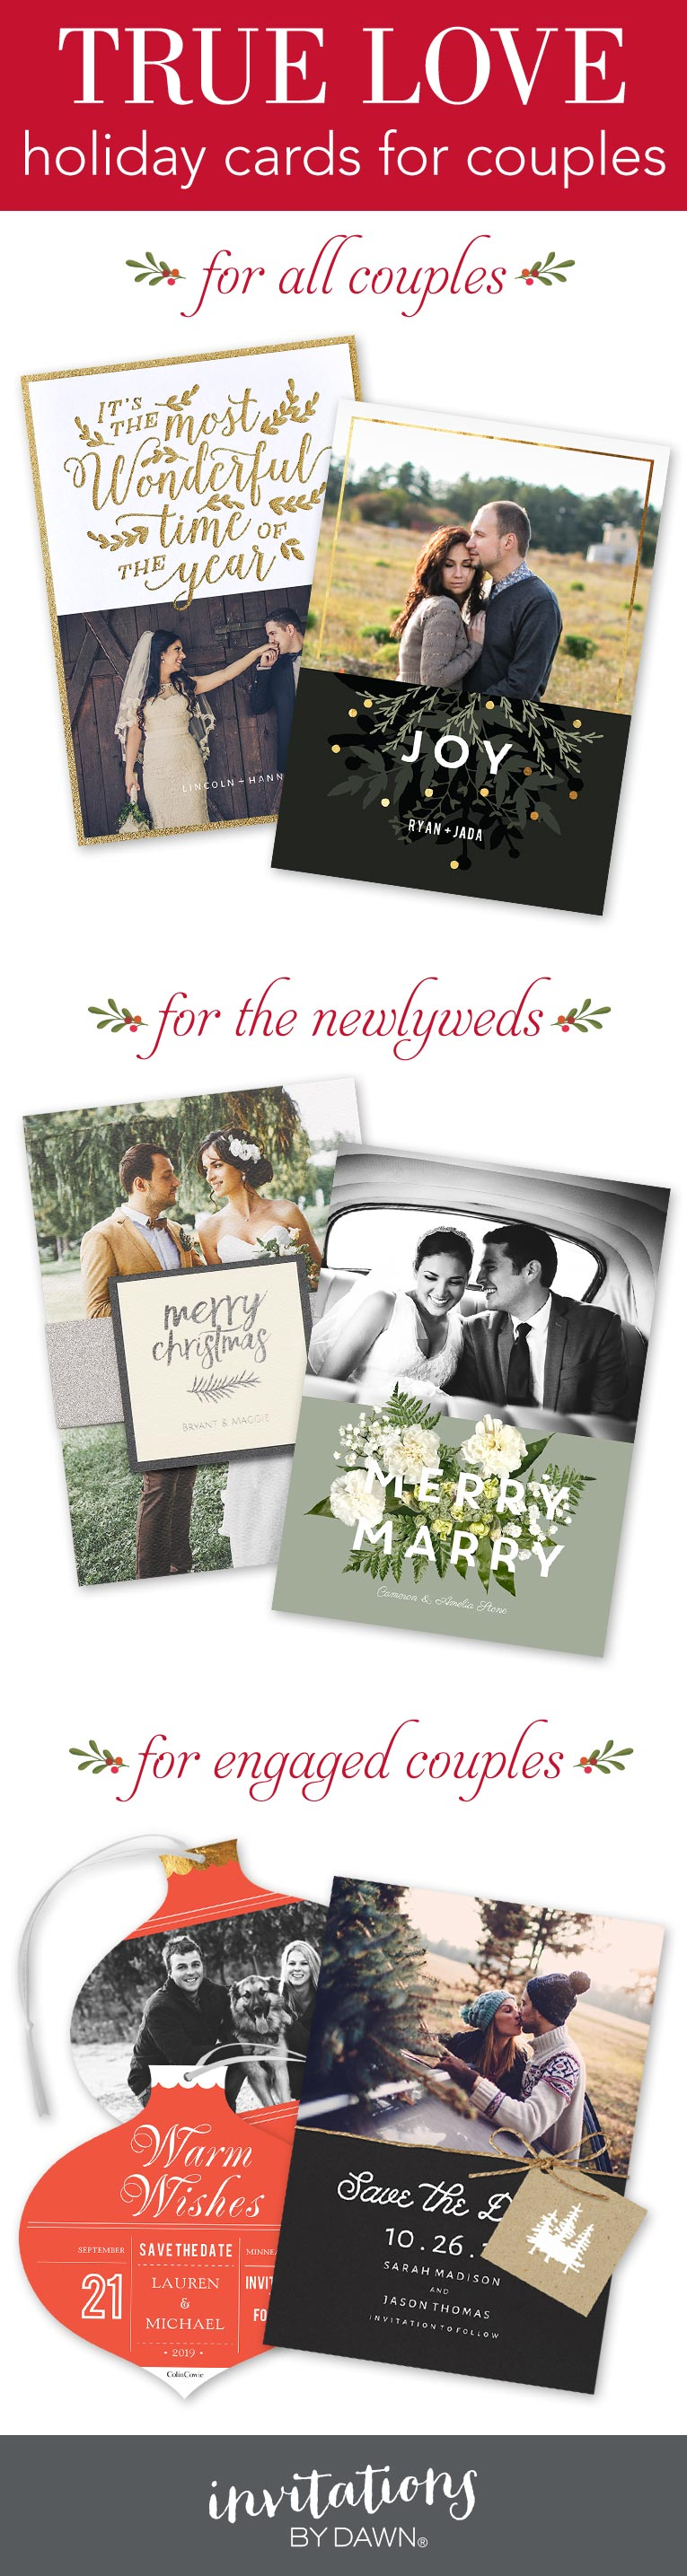 The Perfect Holiday Cards For Couples Couples